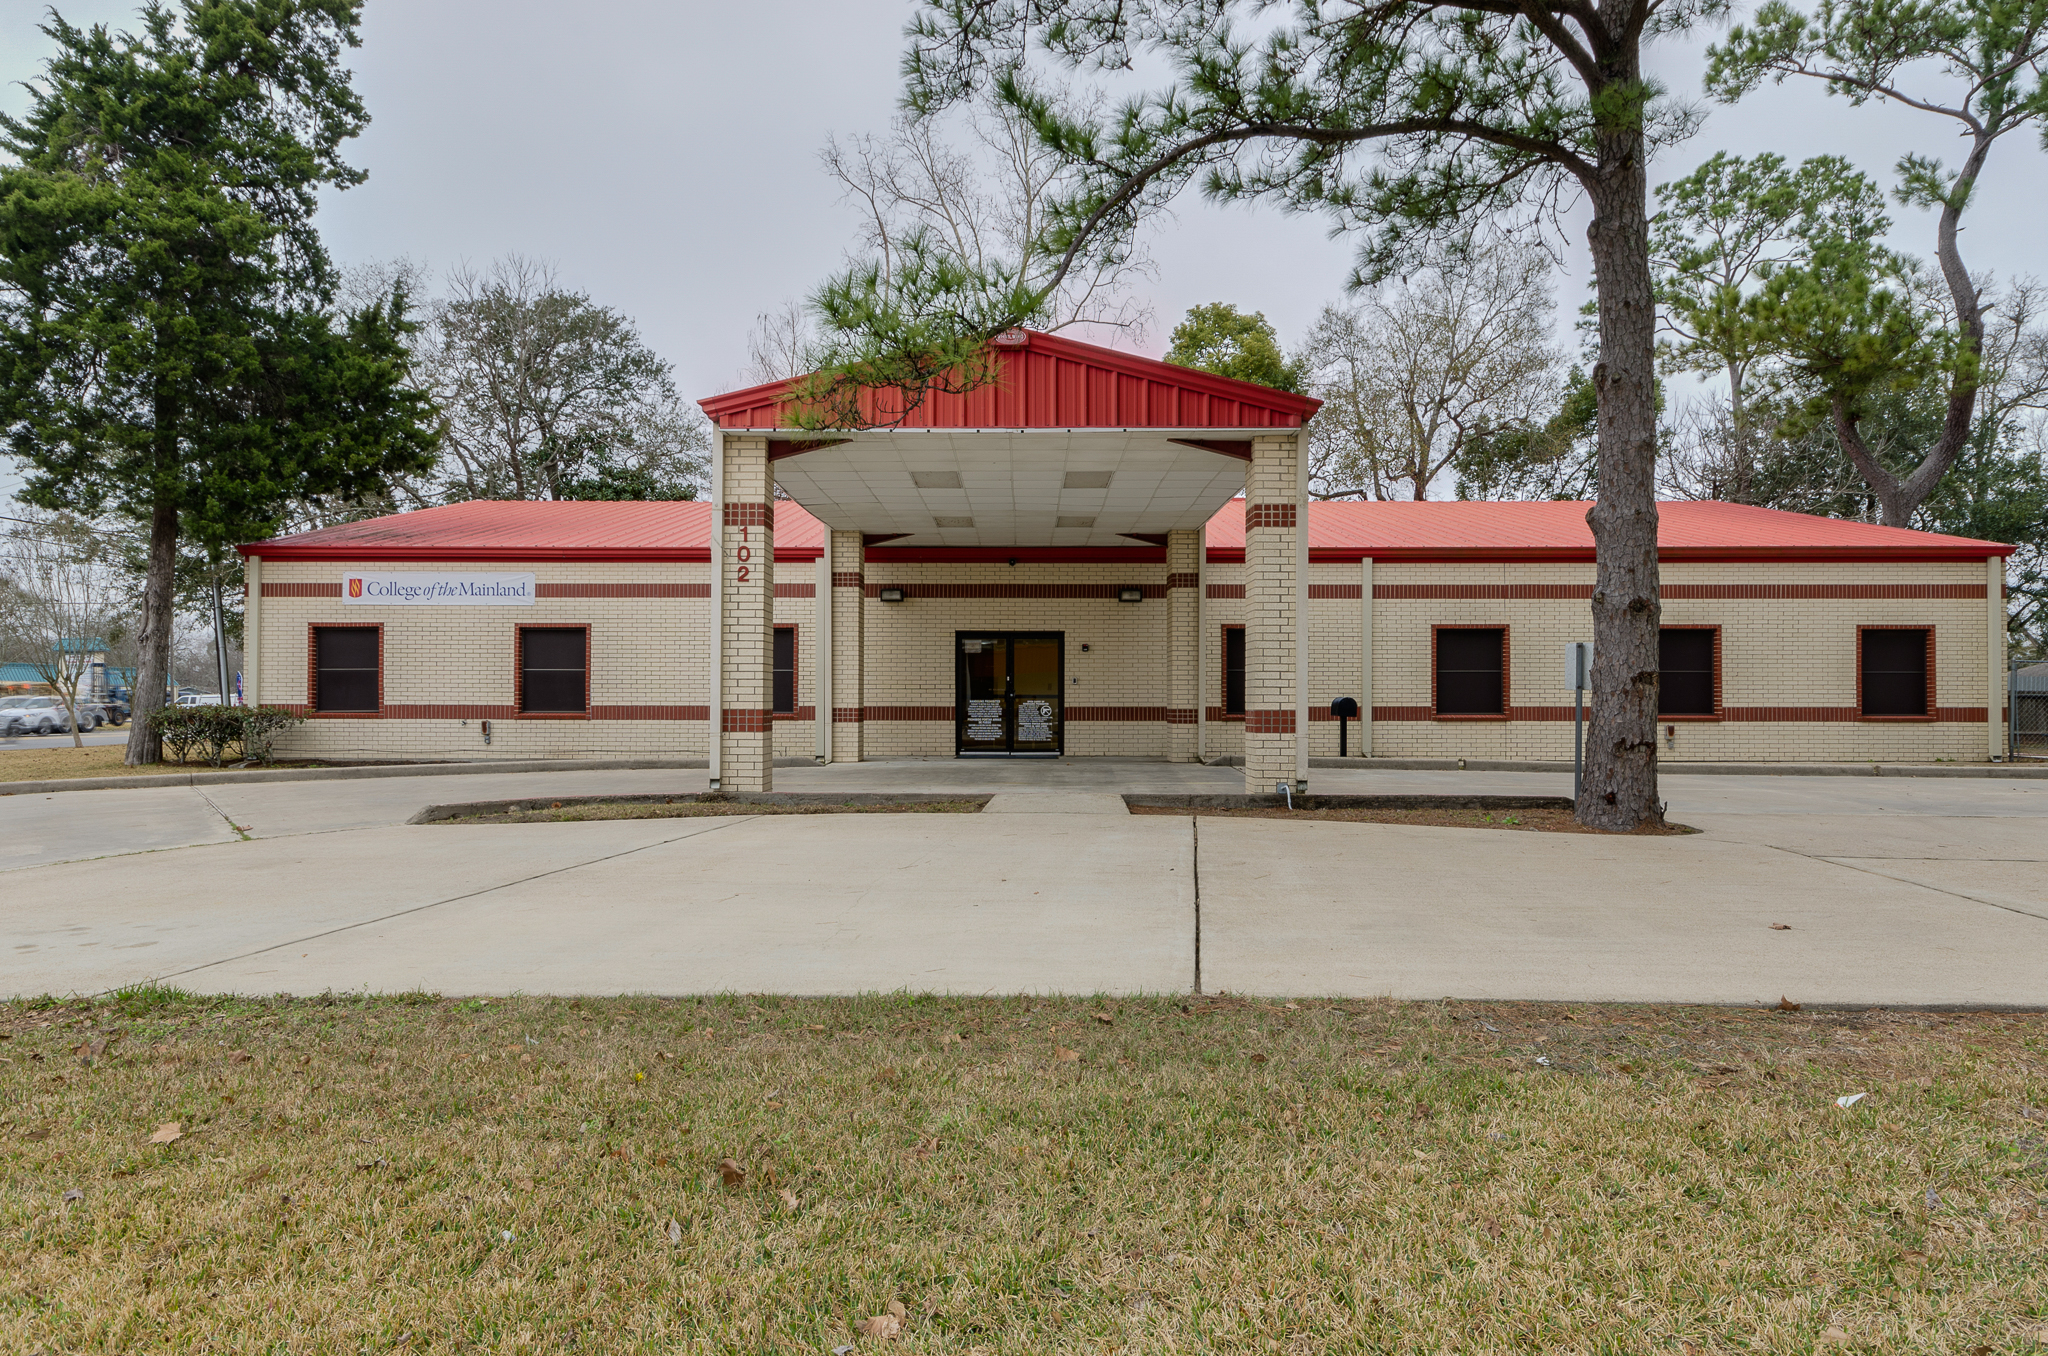 SOLD! 6,000 SF Office Building in League City, Texas